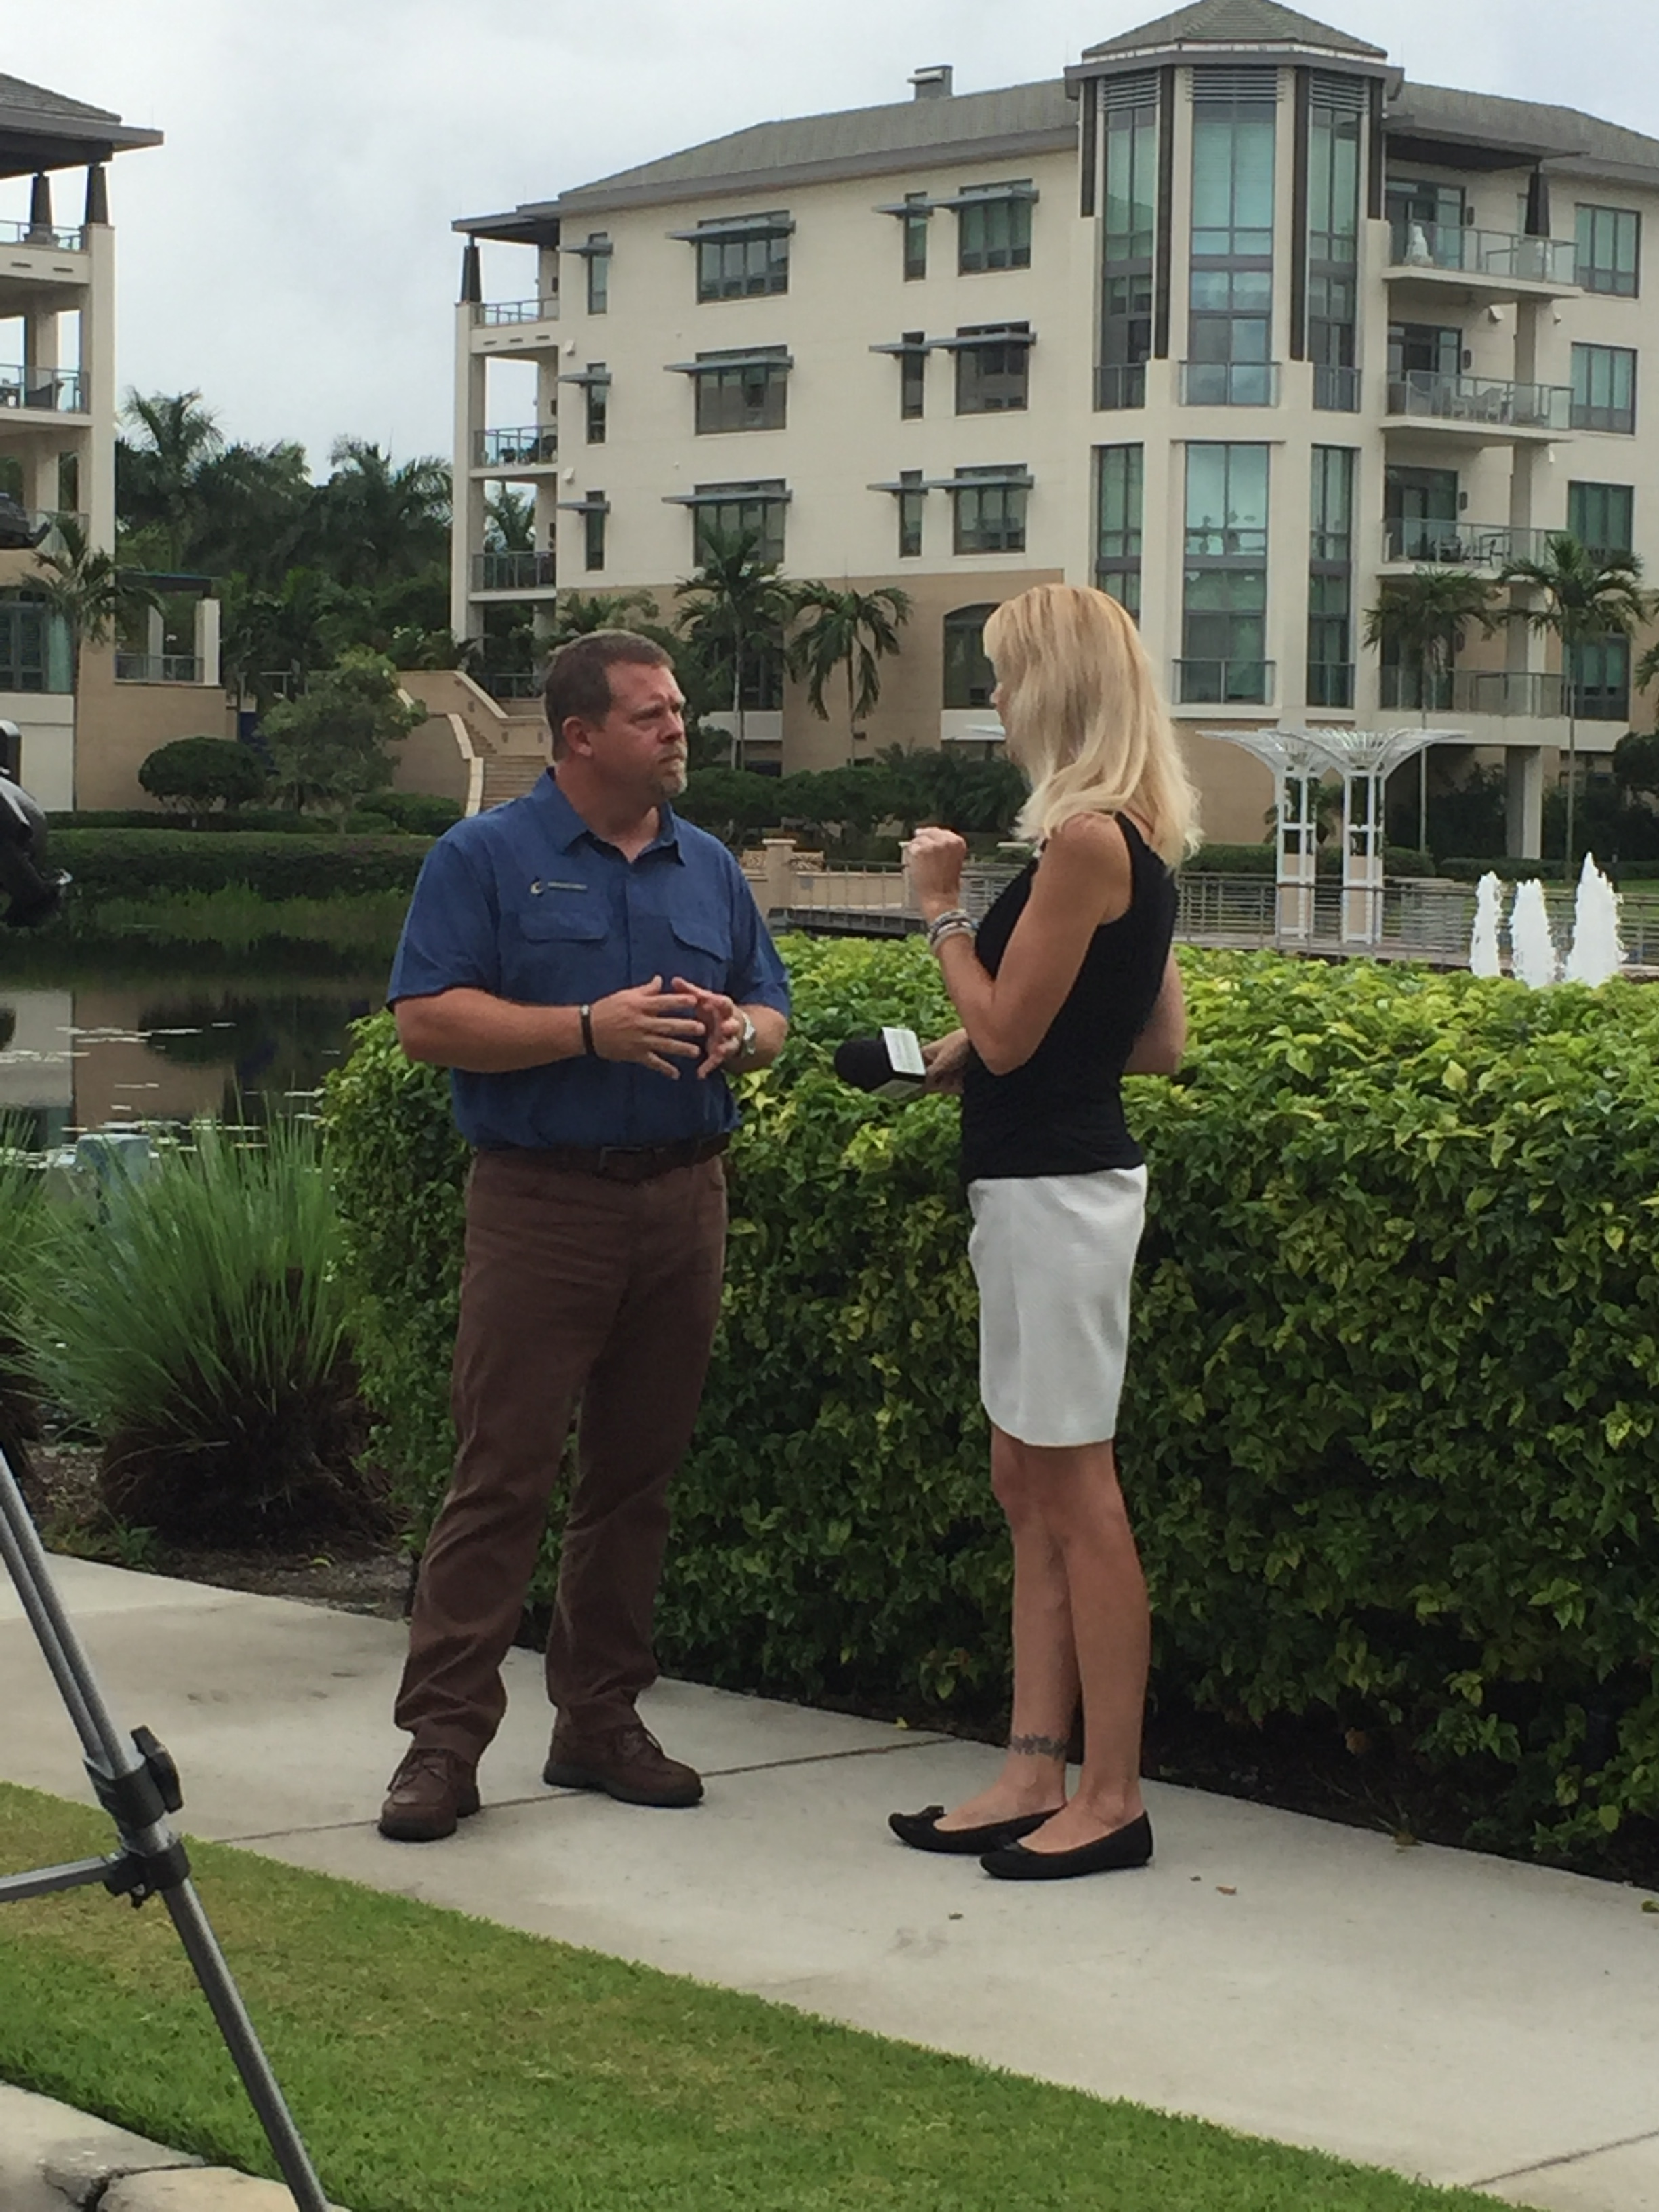 Blake Crawford being interviewed Thursday, August 24th at Moorings Park